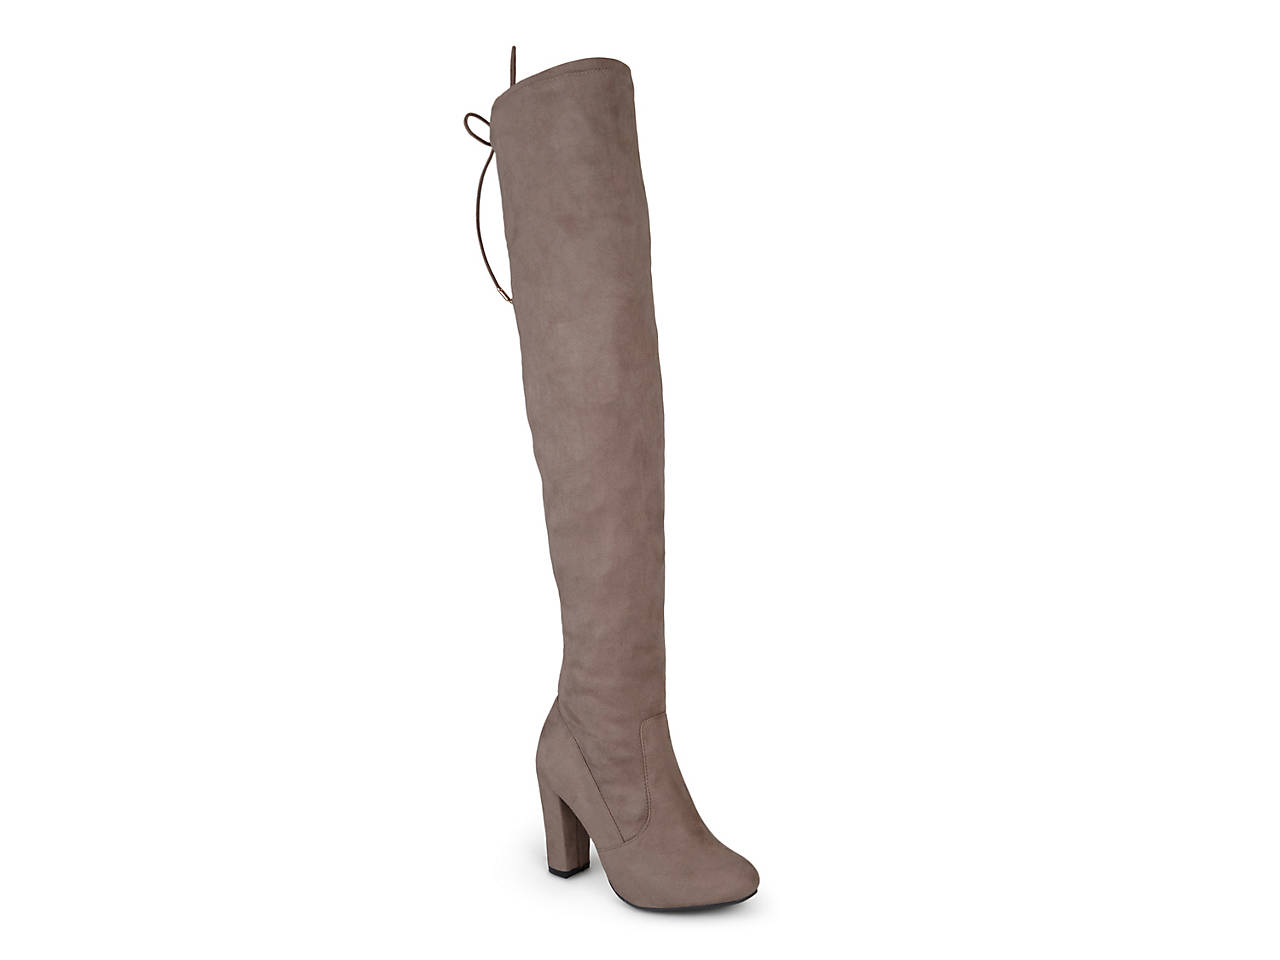 85149deaeaf Journee Collection Maya Wide Calf Thigh High Boot Women s Shoes